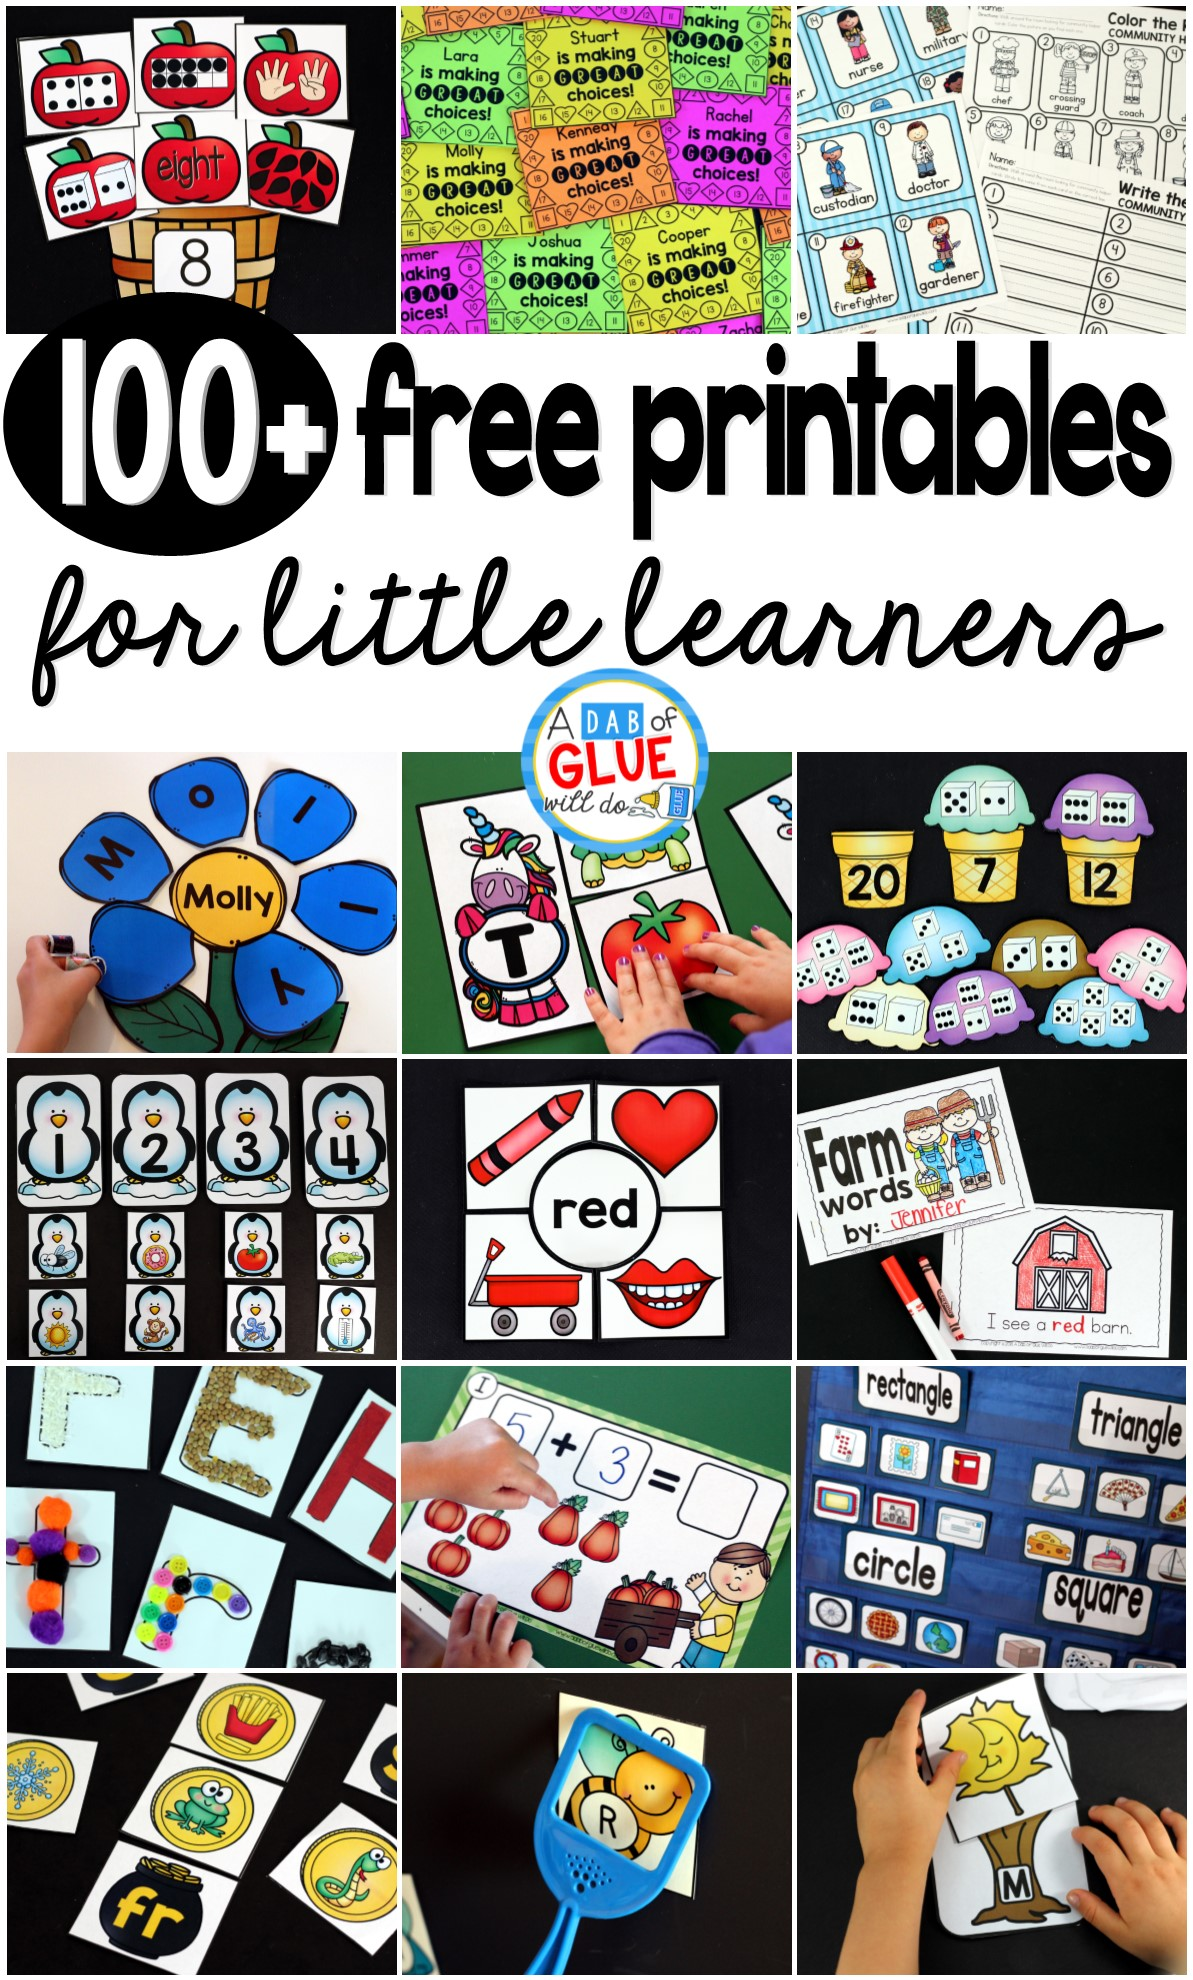 At A Dab of Glue Will Do, we strive to provide you with quality resources, both paid and free. Teaching is hard and finding a balance between planning for your little learners and your life outside the classroom can be difficult. Hopefully this extensive list of free teacher resources will help you find engaging materials for your classroom.